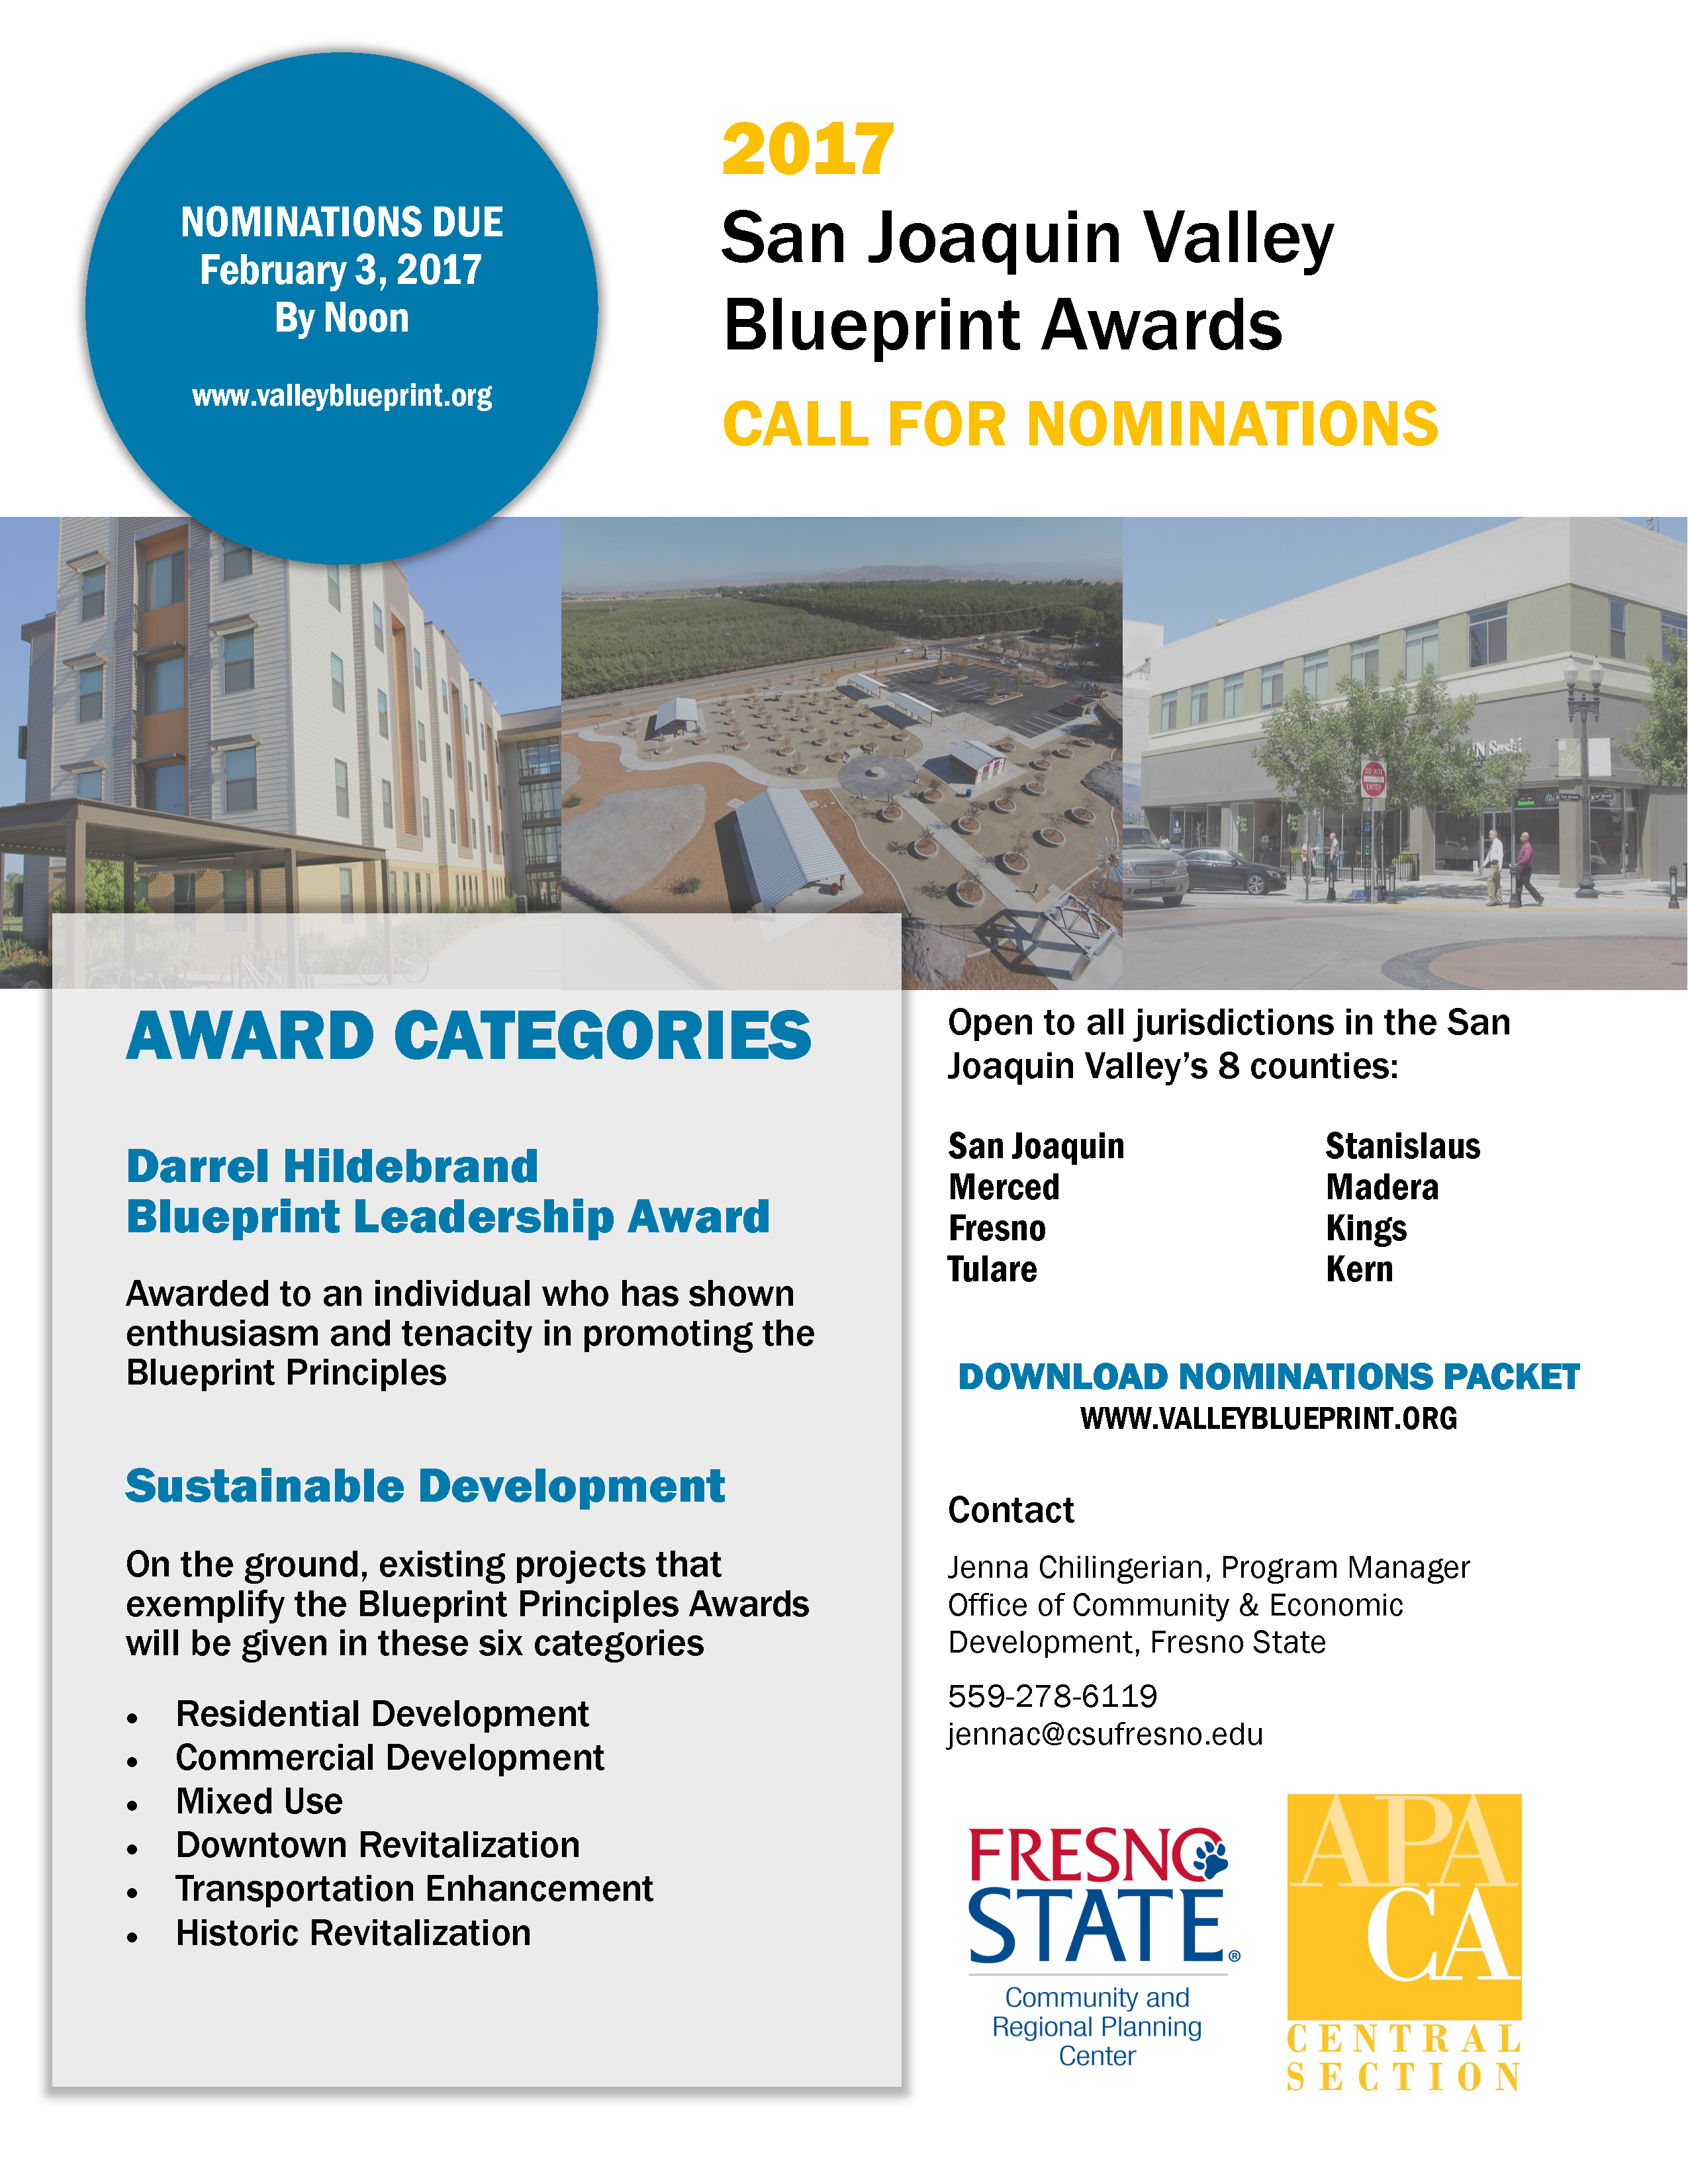 2017 call for nominations san joaquin valley blueprint awards 2017 call for nominations san joaquin valley blueprint awards sjcog newsroom malvernweather Image collections